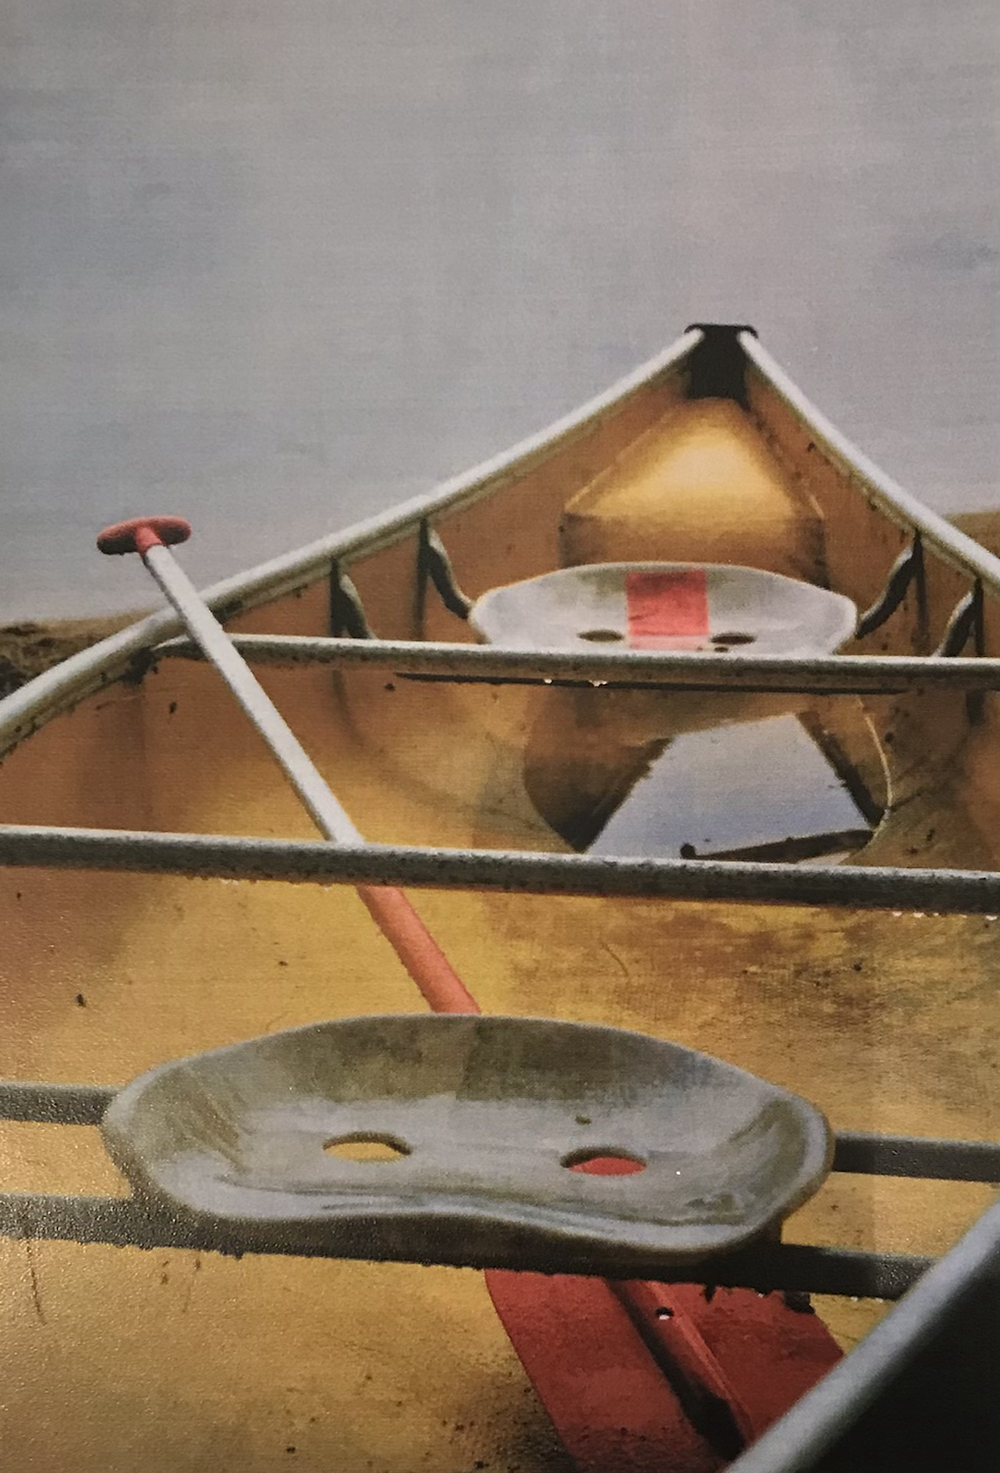 Original photo by Ancient Doors Designs of a yellow canoe on the beach